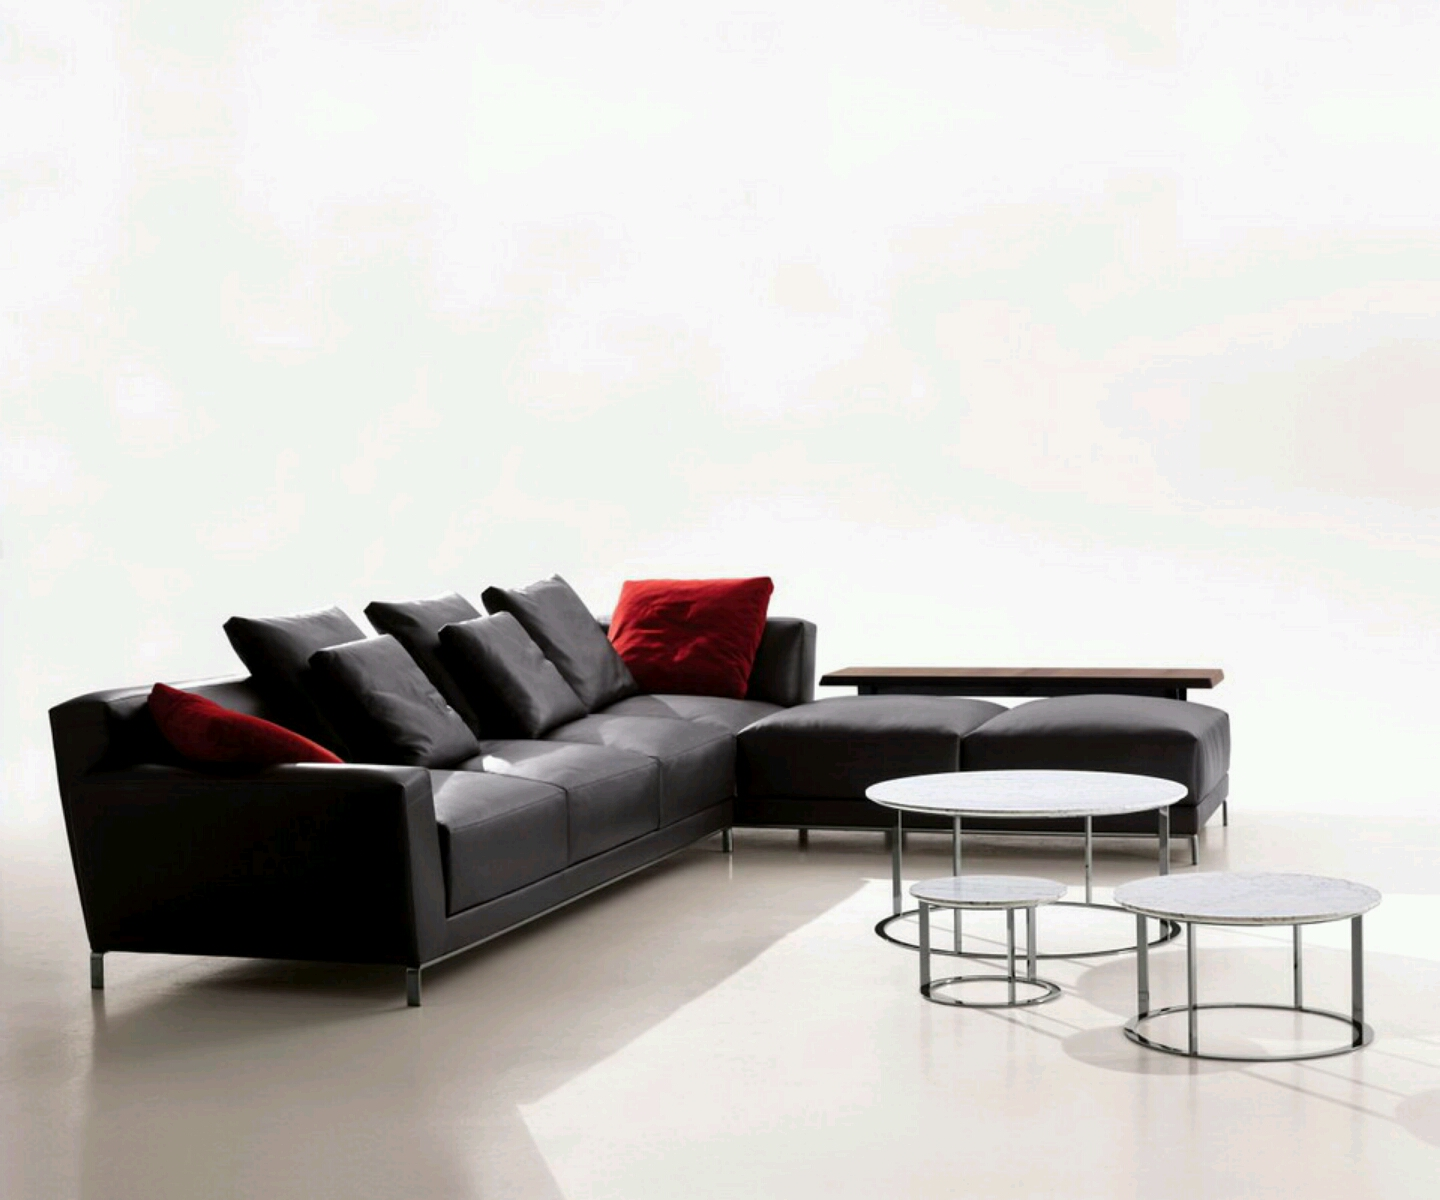 Modern Furniture Sofa Design Beds London Ont Designs With Beautiful Cushion Styles